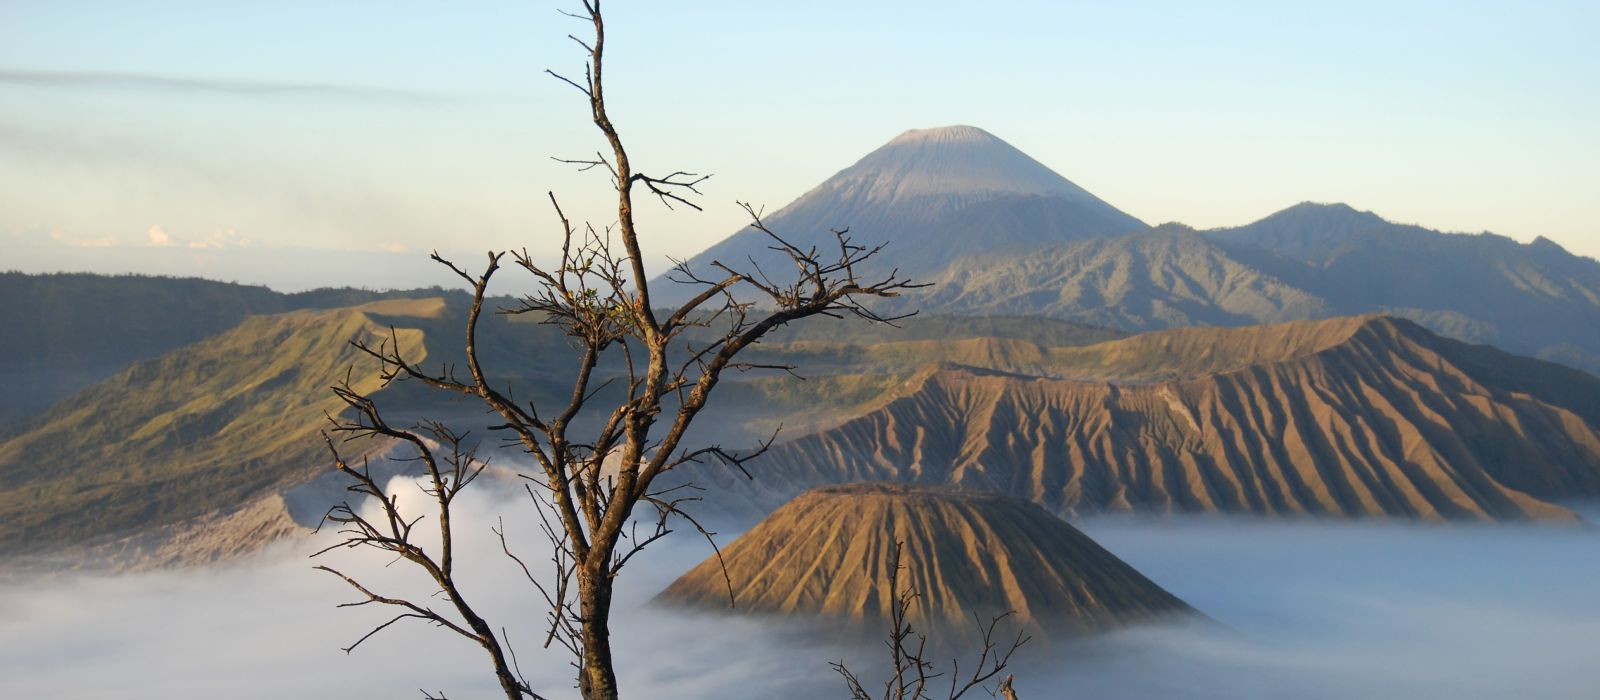 Destination Mt.Bromo Indonesia